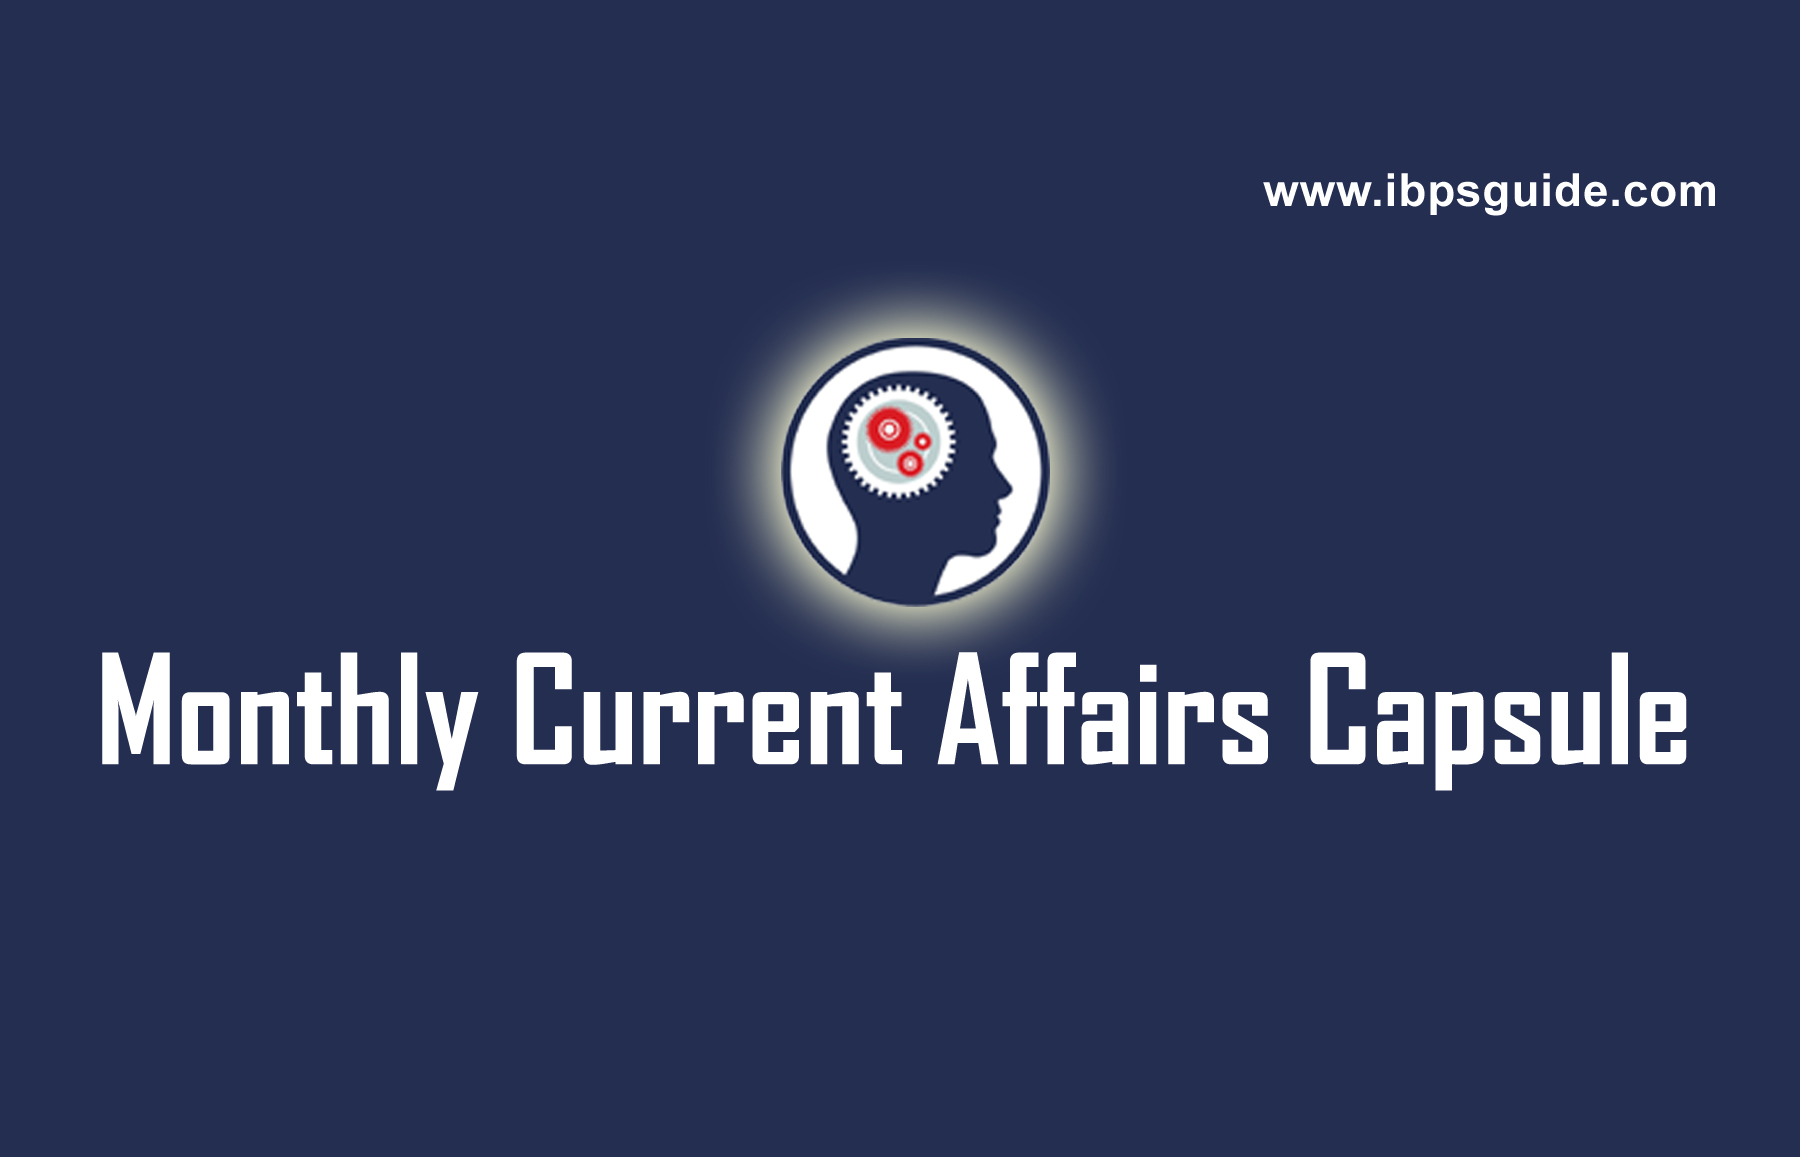 Monthly Current Affairs PDF Capsule - Free Download | IBPS Guide